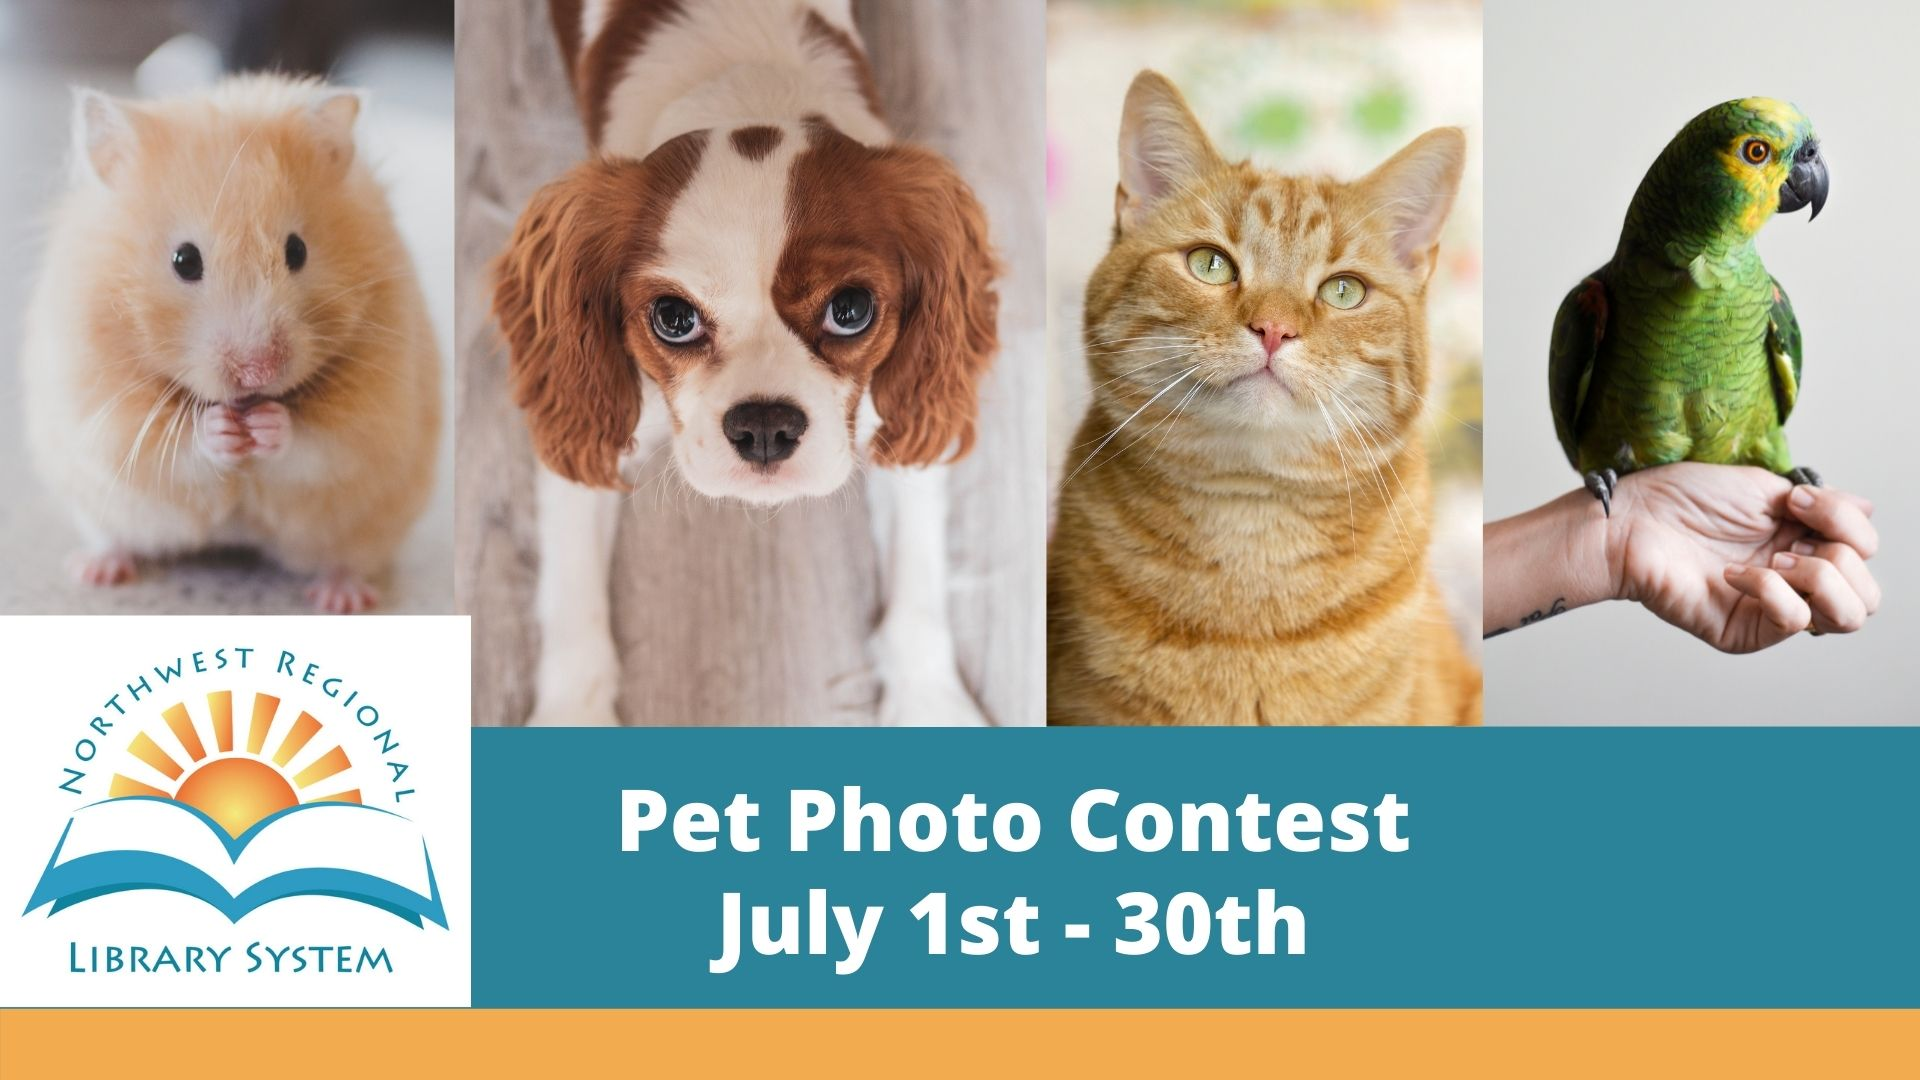 Pet Photo Contest for adults at Wewahitchka Library